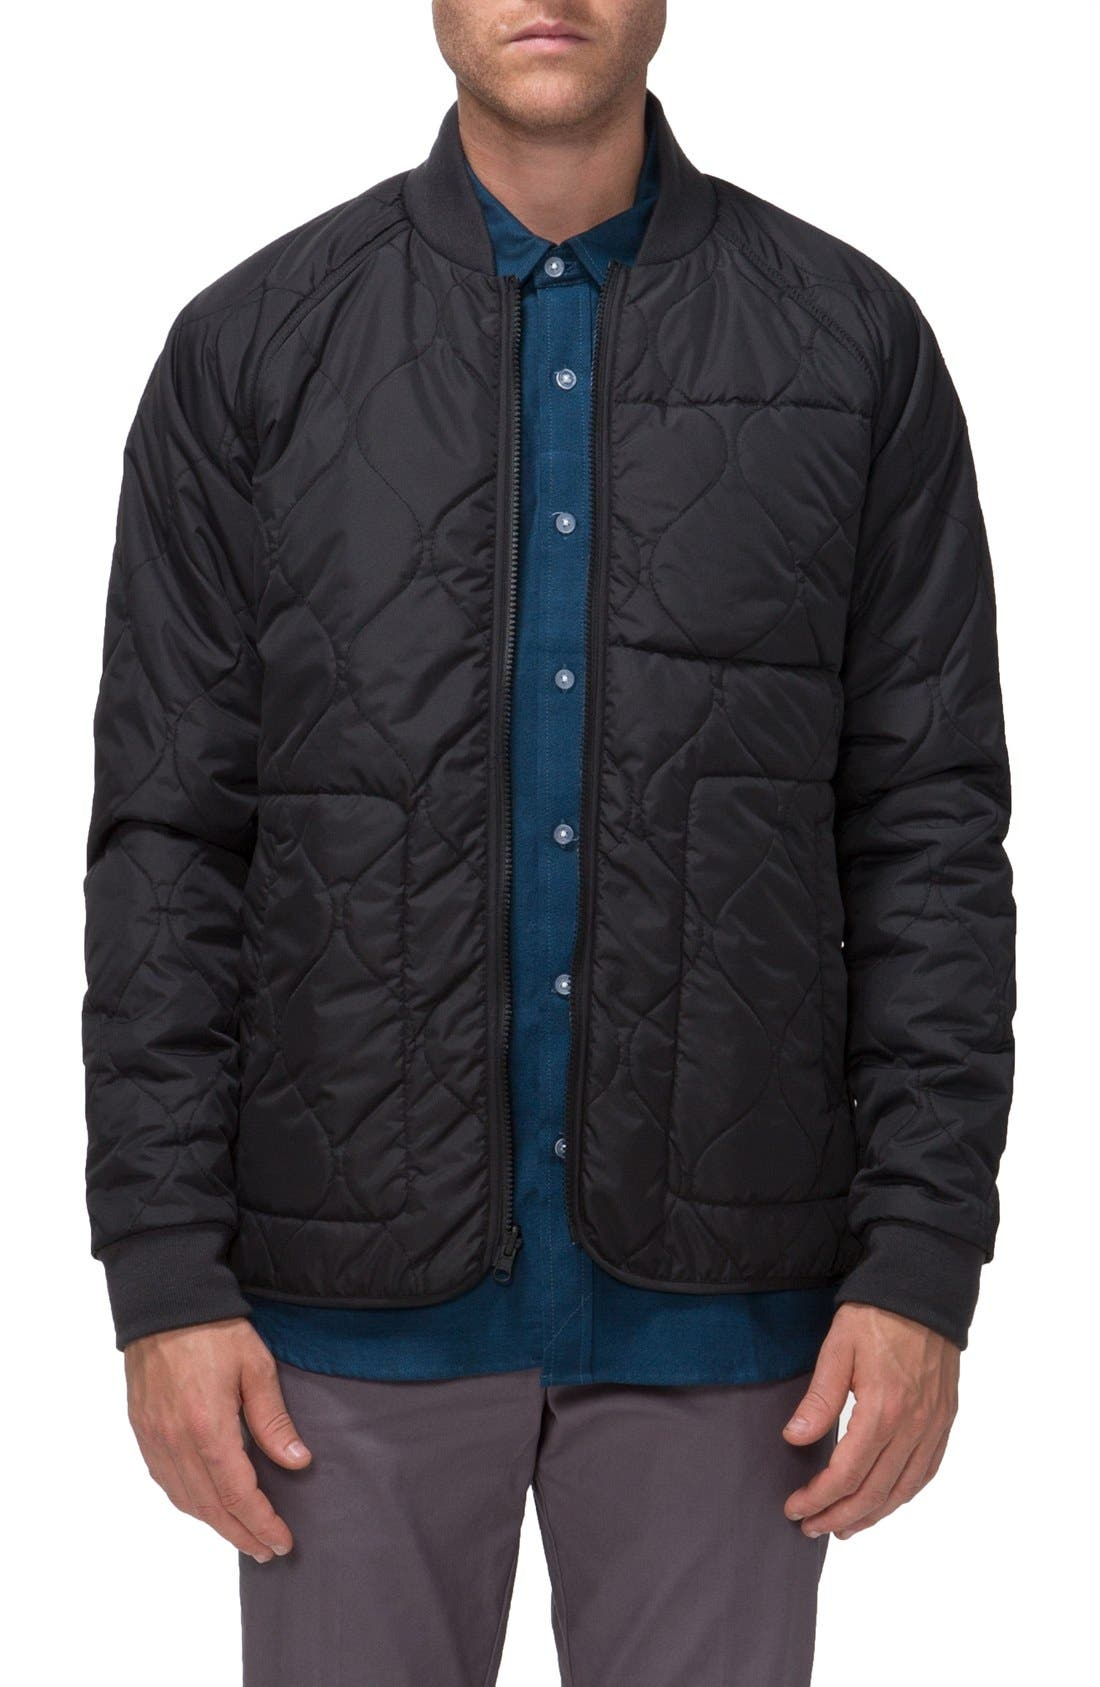 Fullton Zip-In Compatible Quilted Bomber Jacket,                         Main,                         color, 001